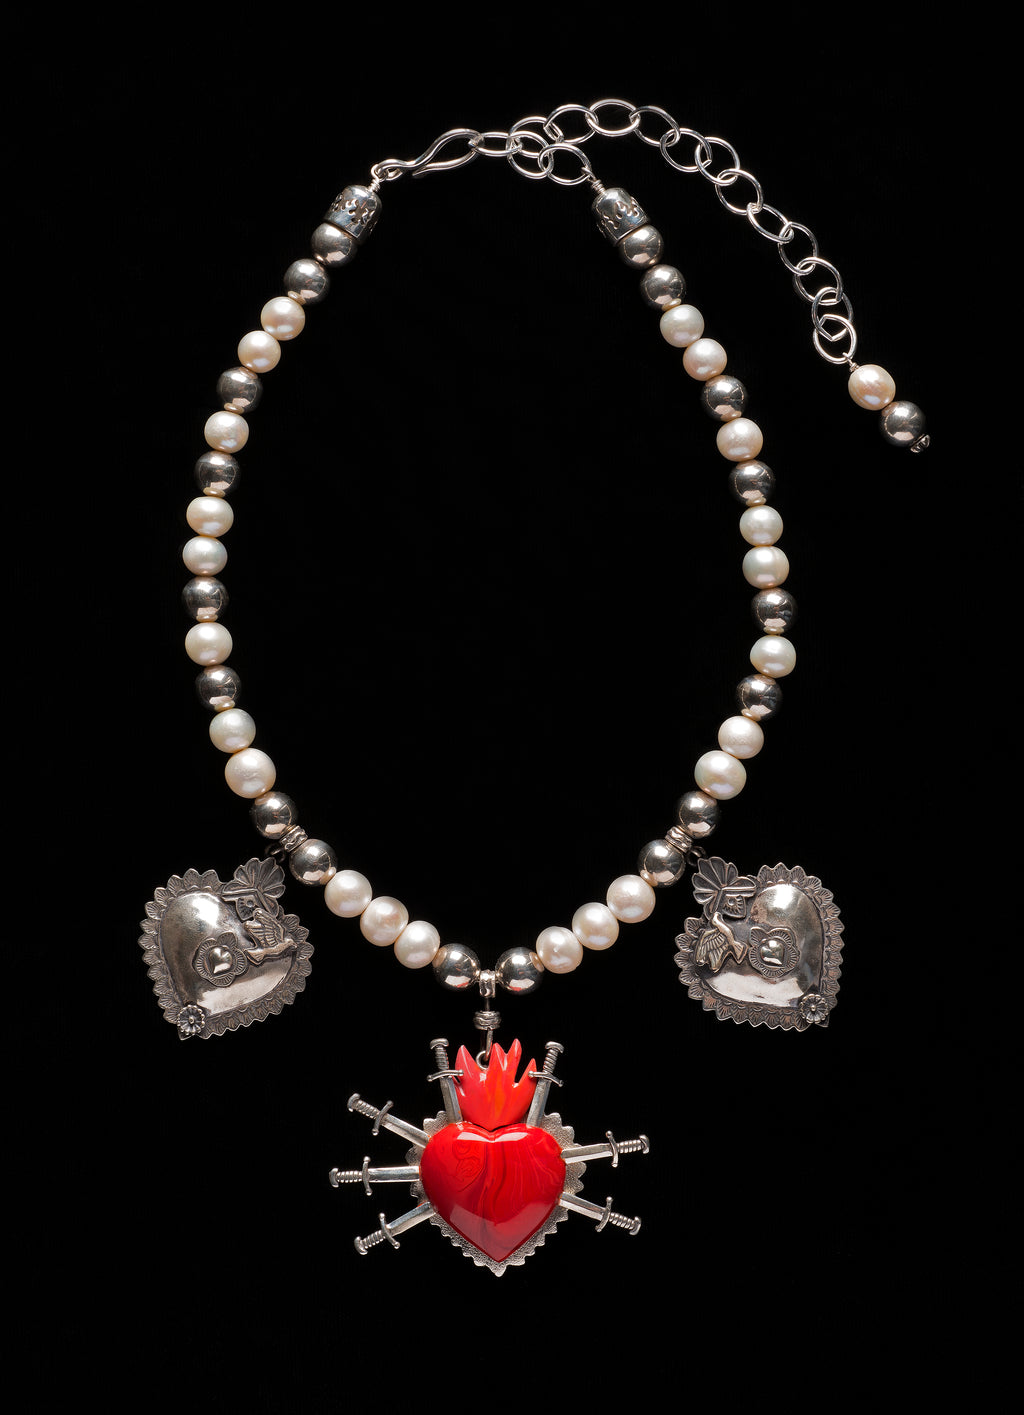 Award-winning Mater Dolorosa Necklace